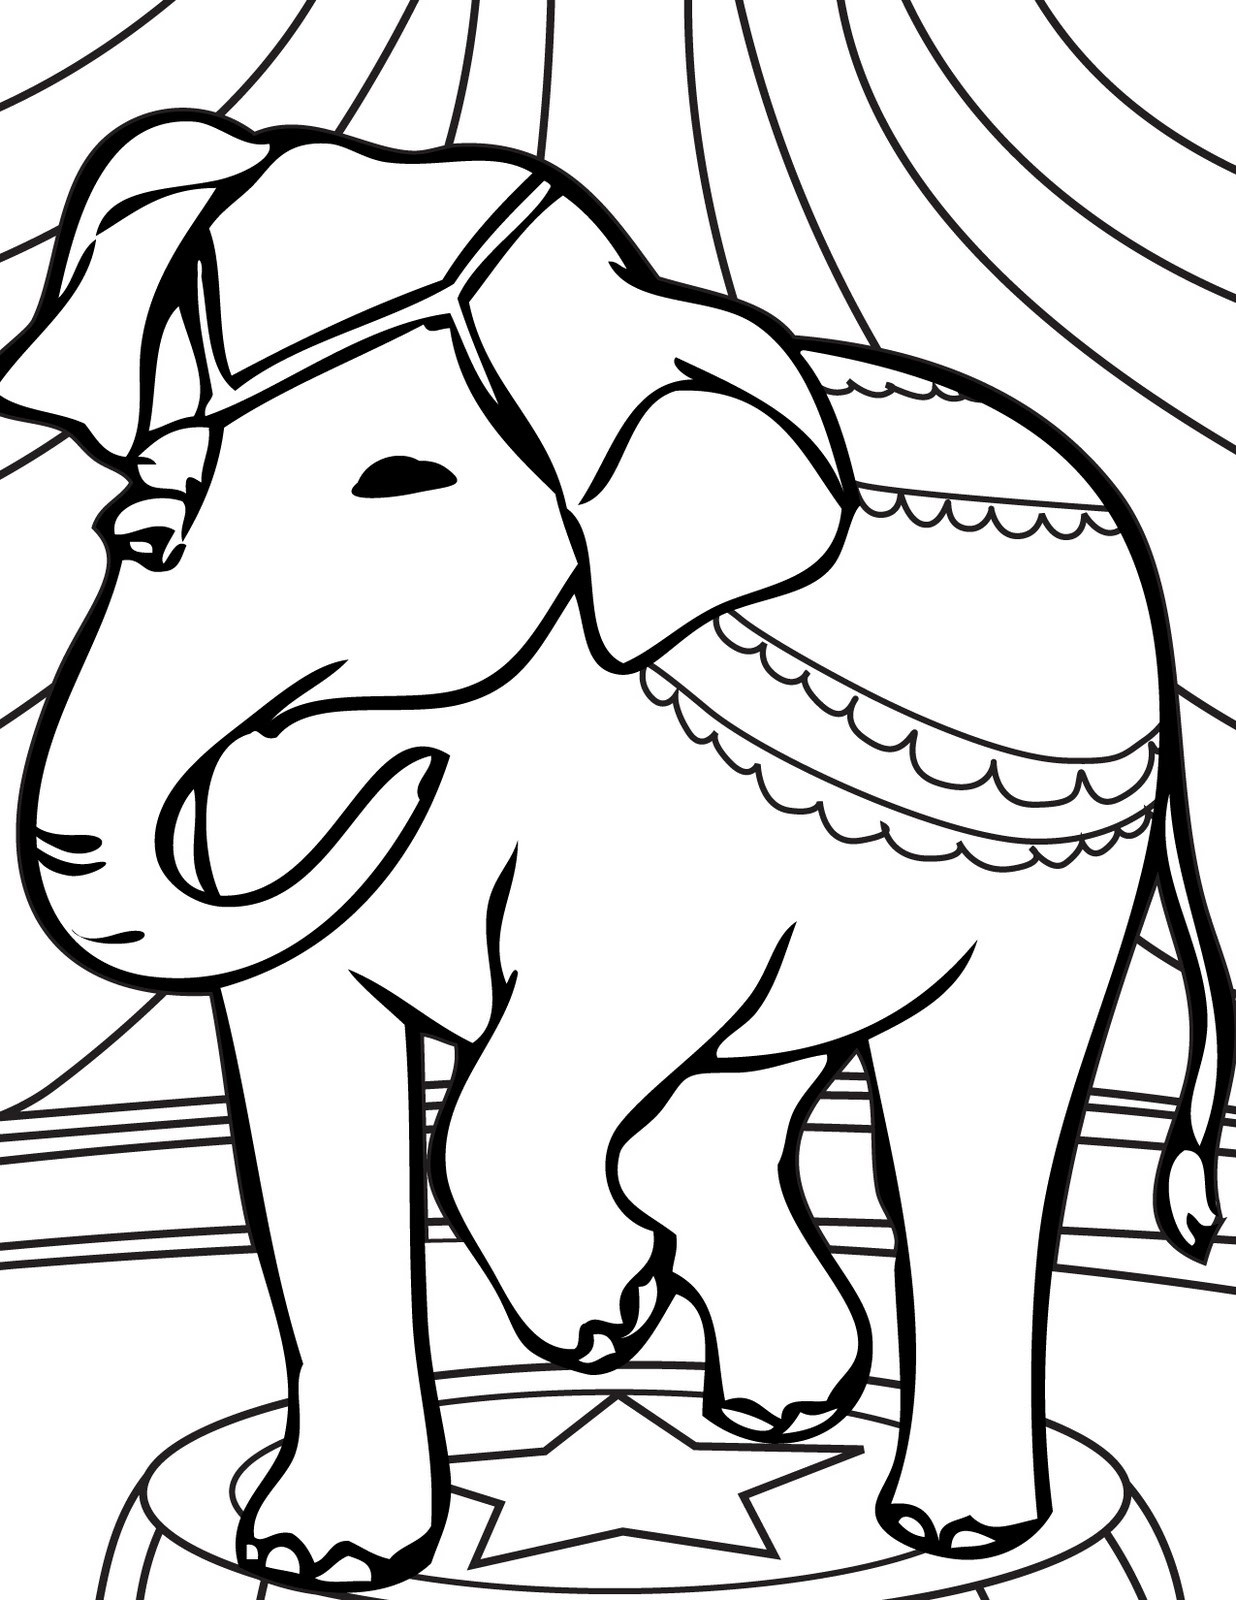 1236x1600 Lovely Circus Elephants Coloring Pages